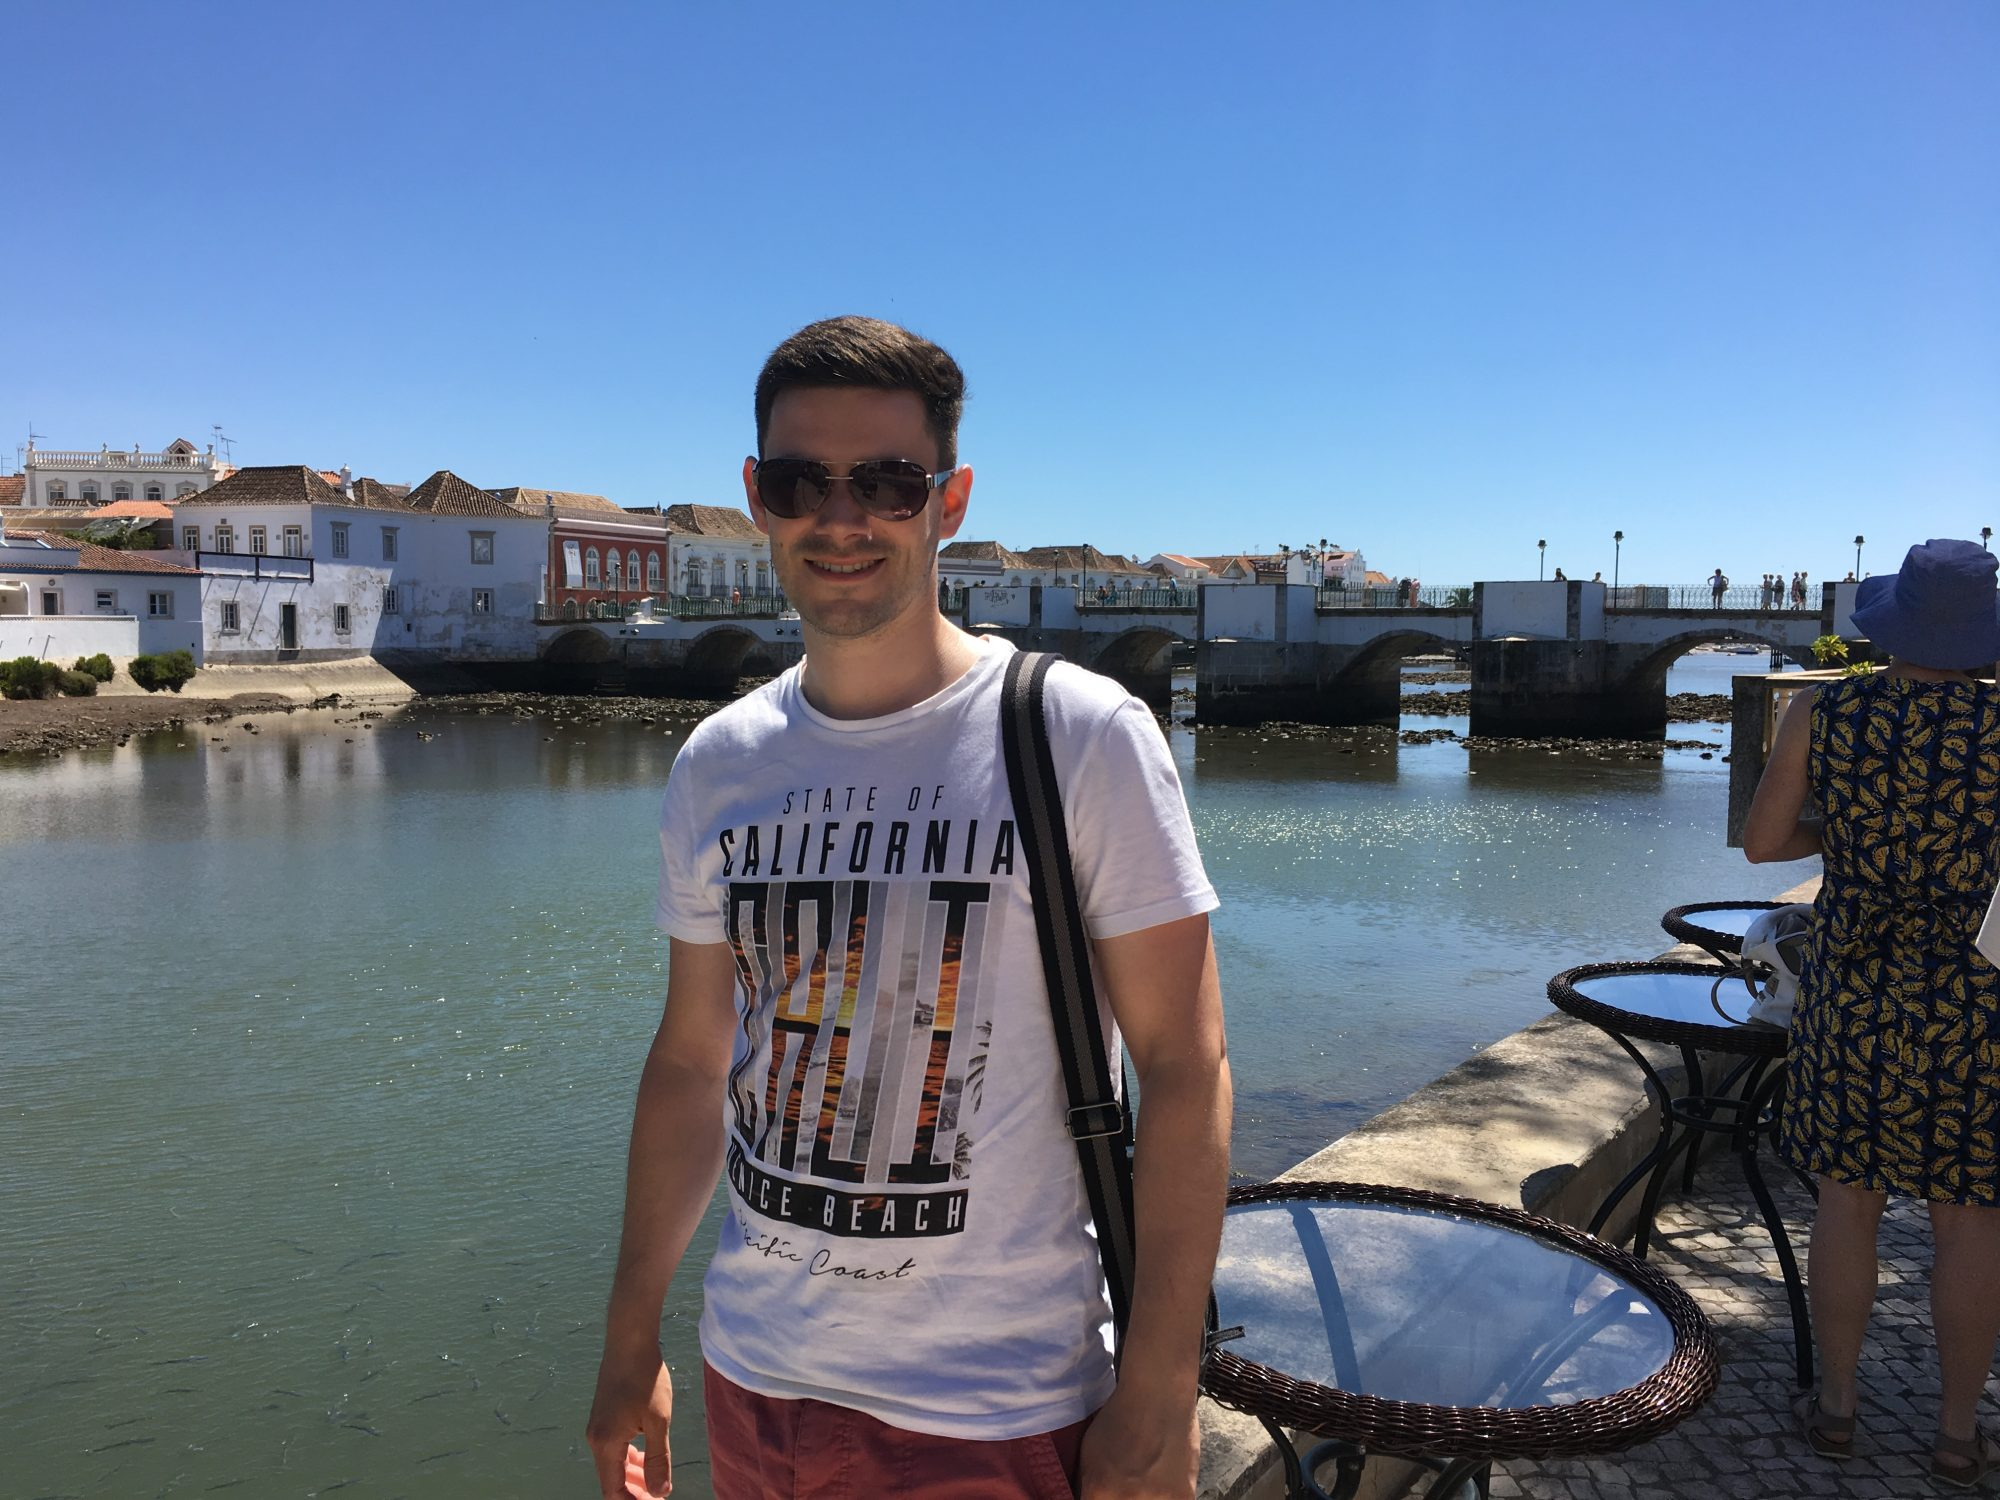 By the Roman Bridge in Tavira